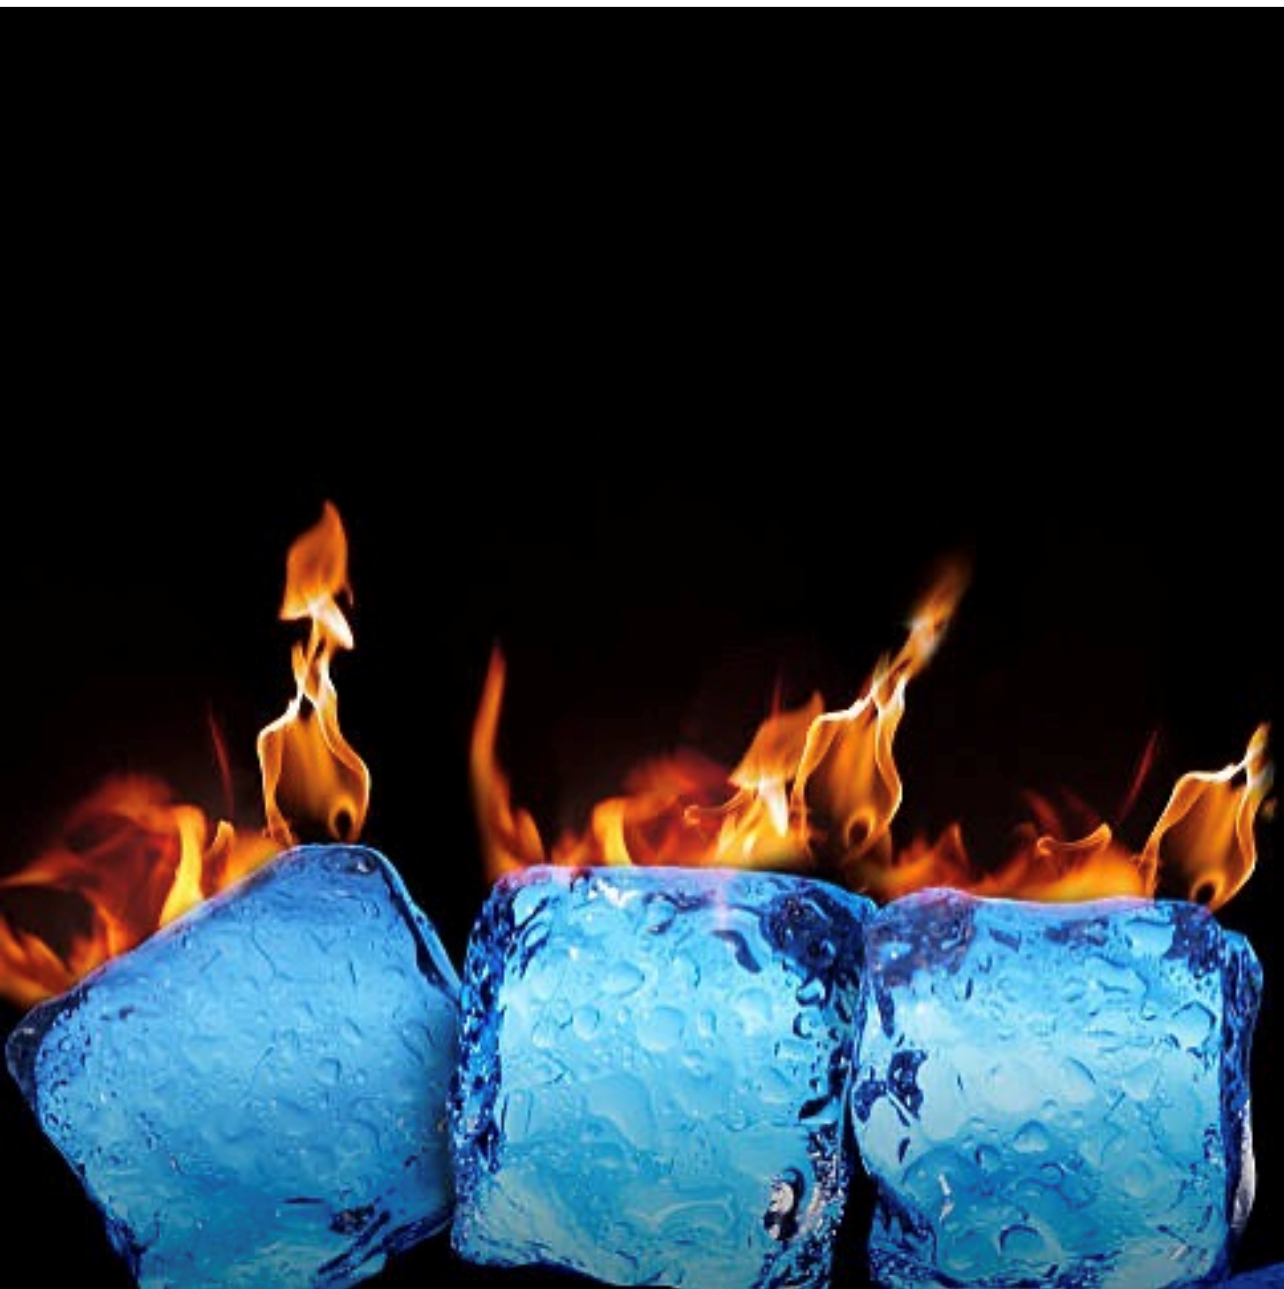 Flames coming off the top of the ice cubes